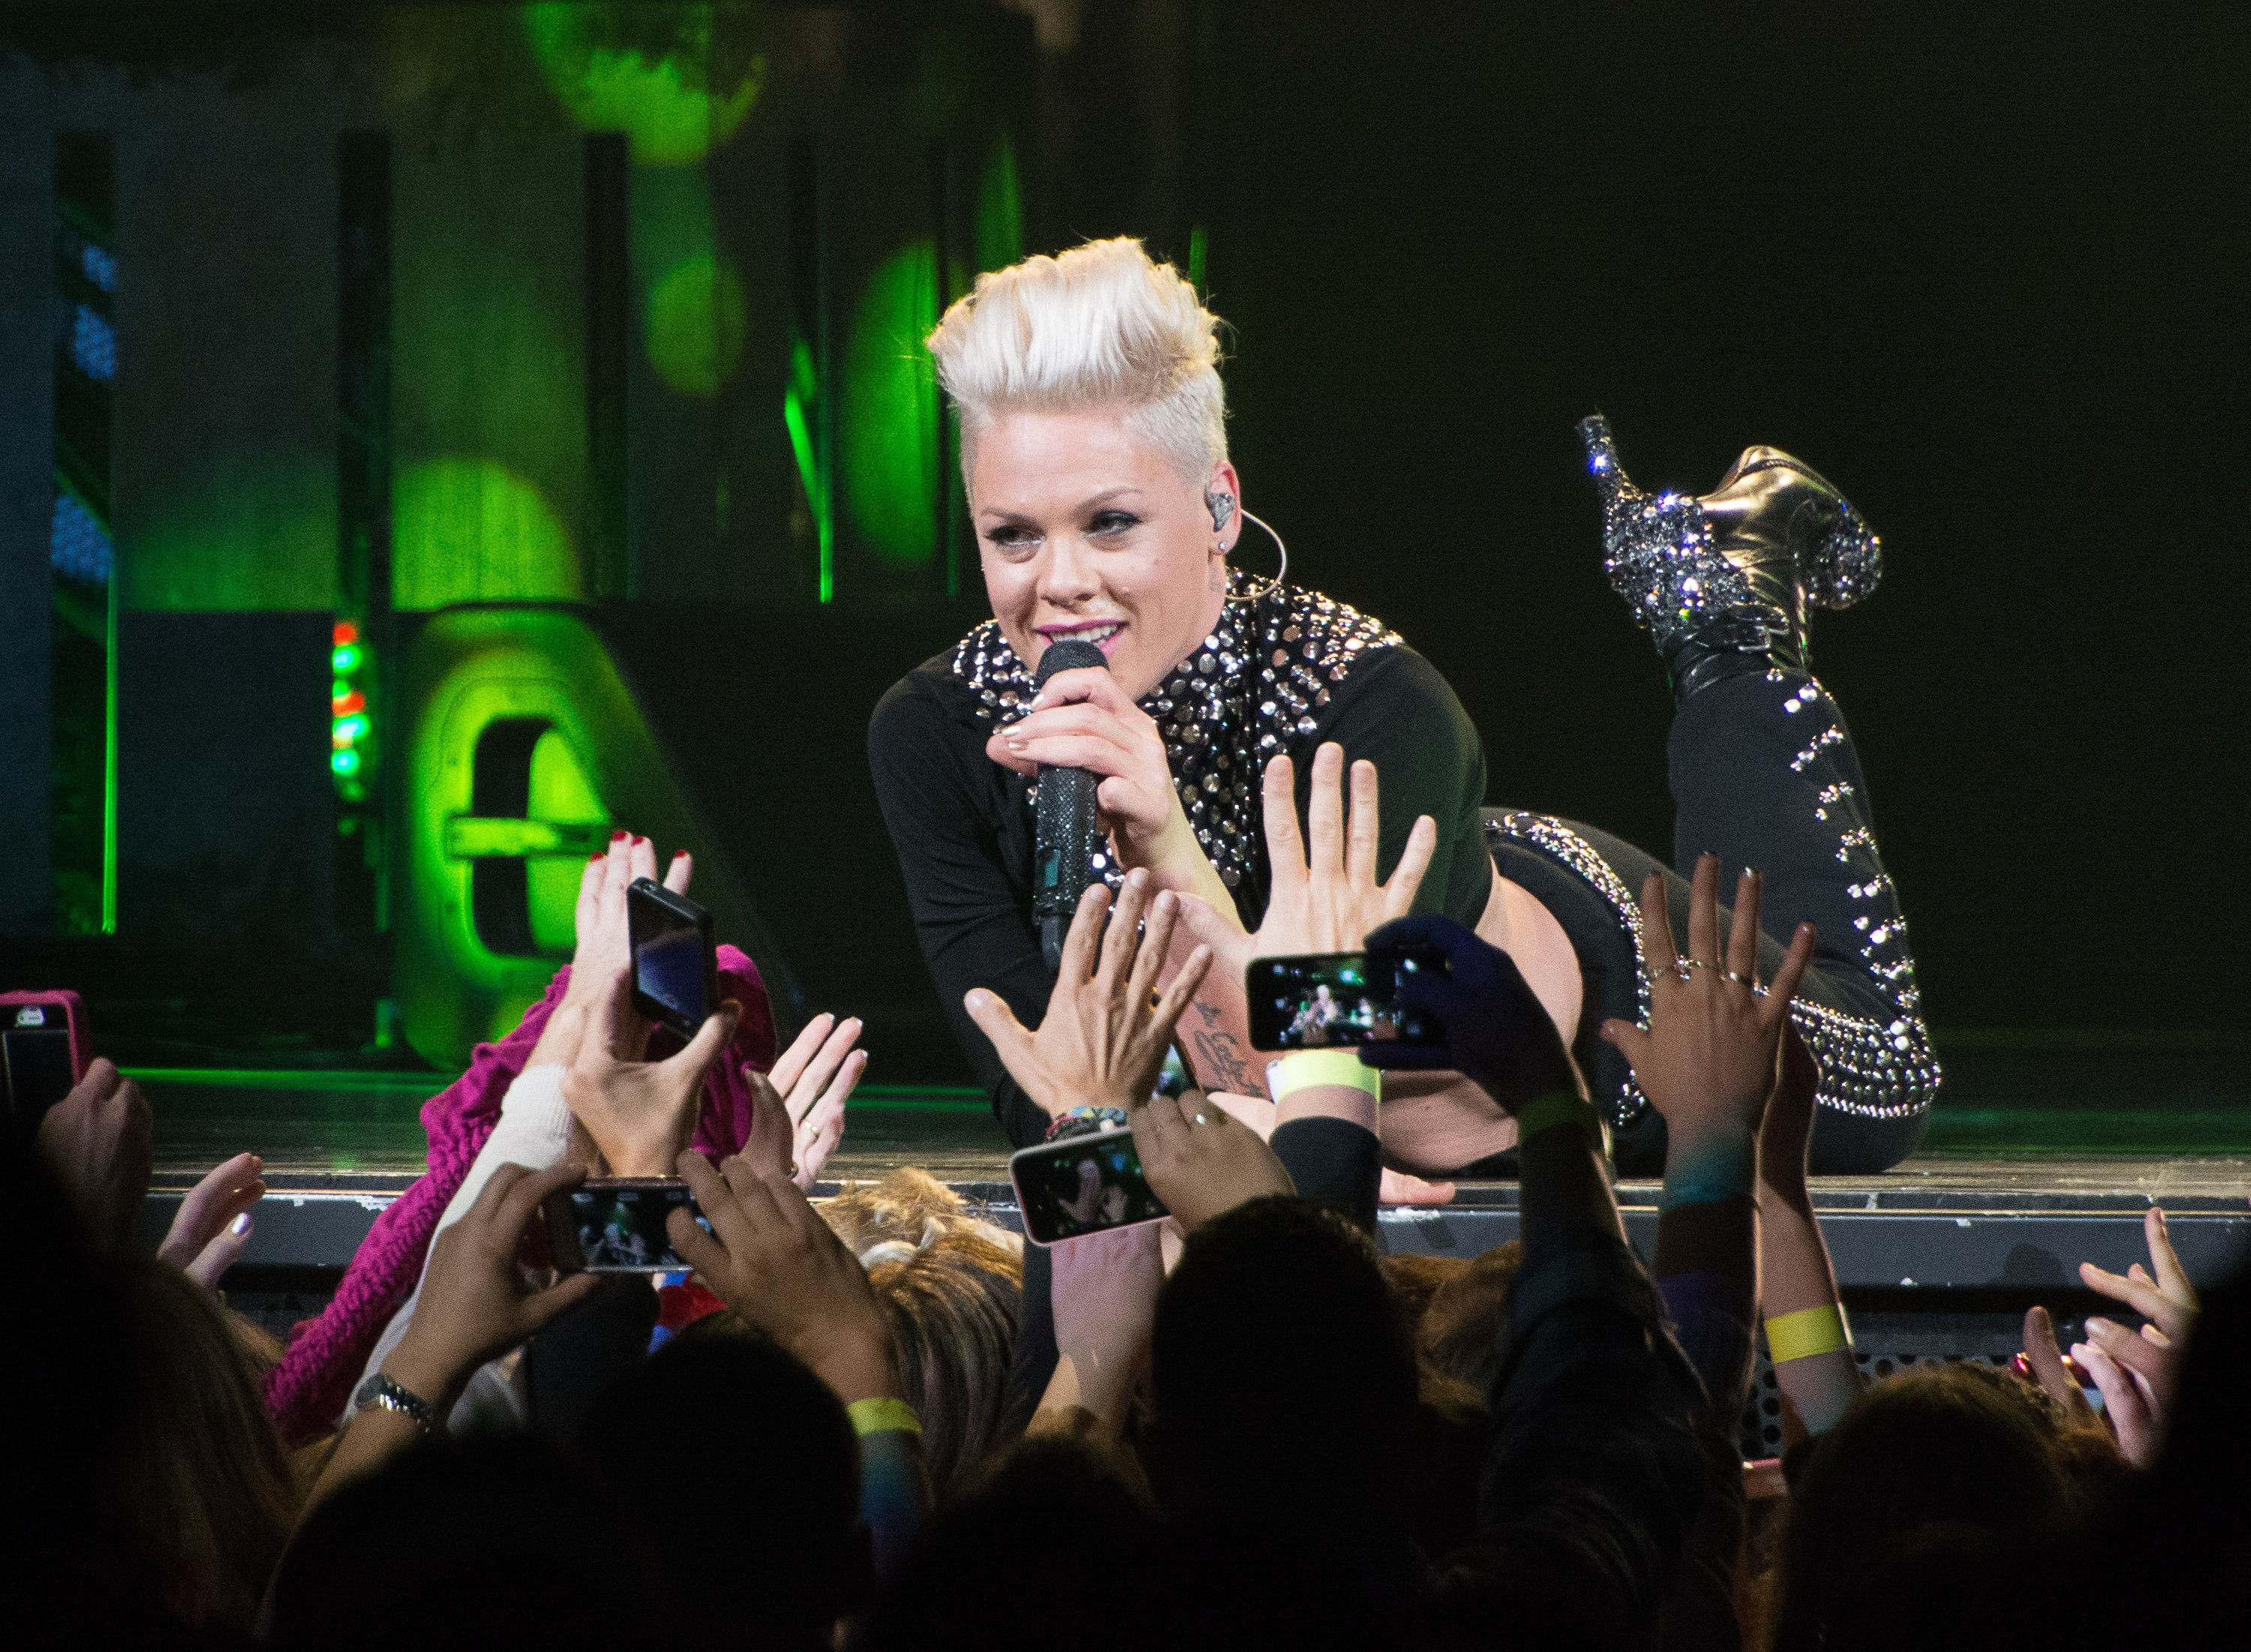 P!nk In Concert - New York, NY